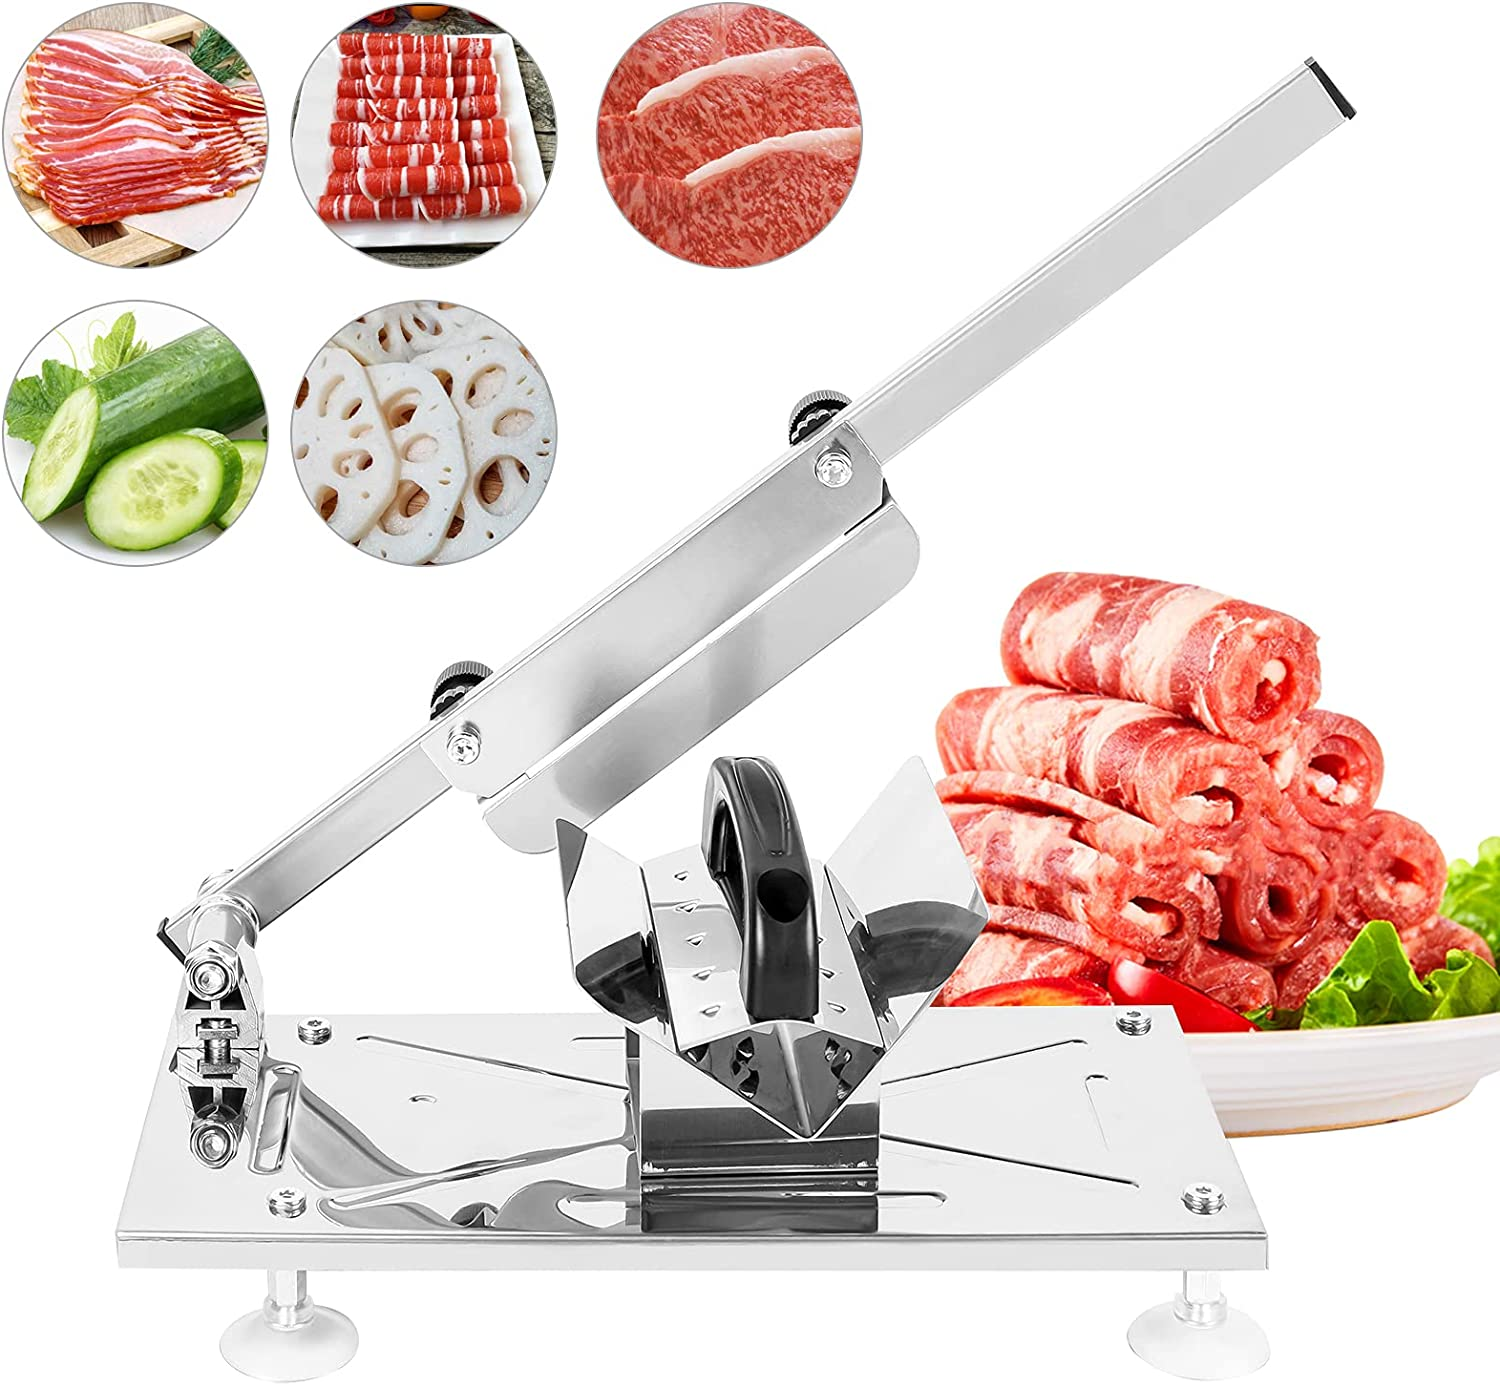 WOOW DEPOT Manual Meat Slicer Frozen Meat Cutter Stainless Steel Mutton Beef Roll Slicing Machine Food Cleaver Adjustable Slice Thickness Vegetable Fruit Cheese Cleaver for Kitchen Home Use, Silver